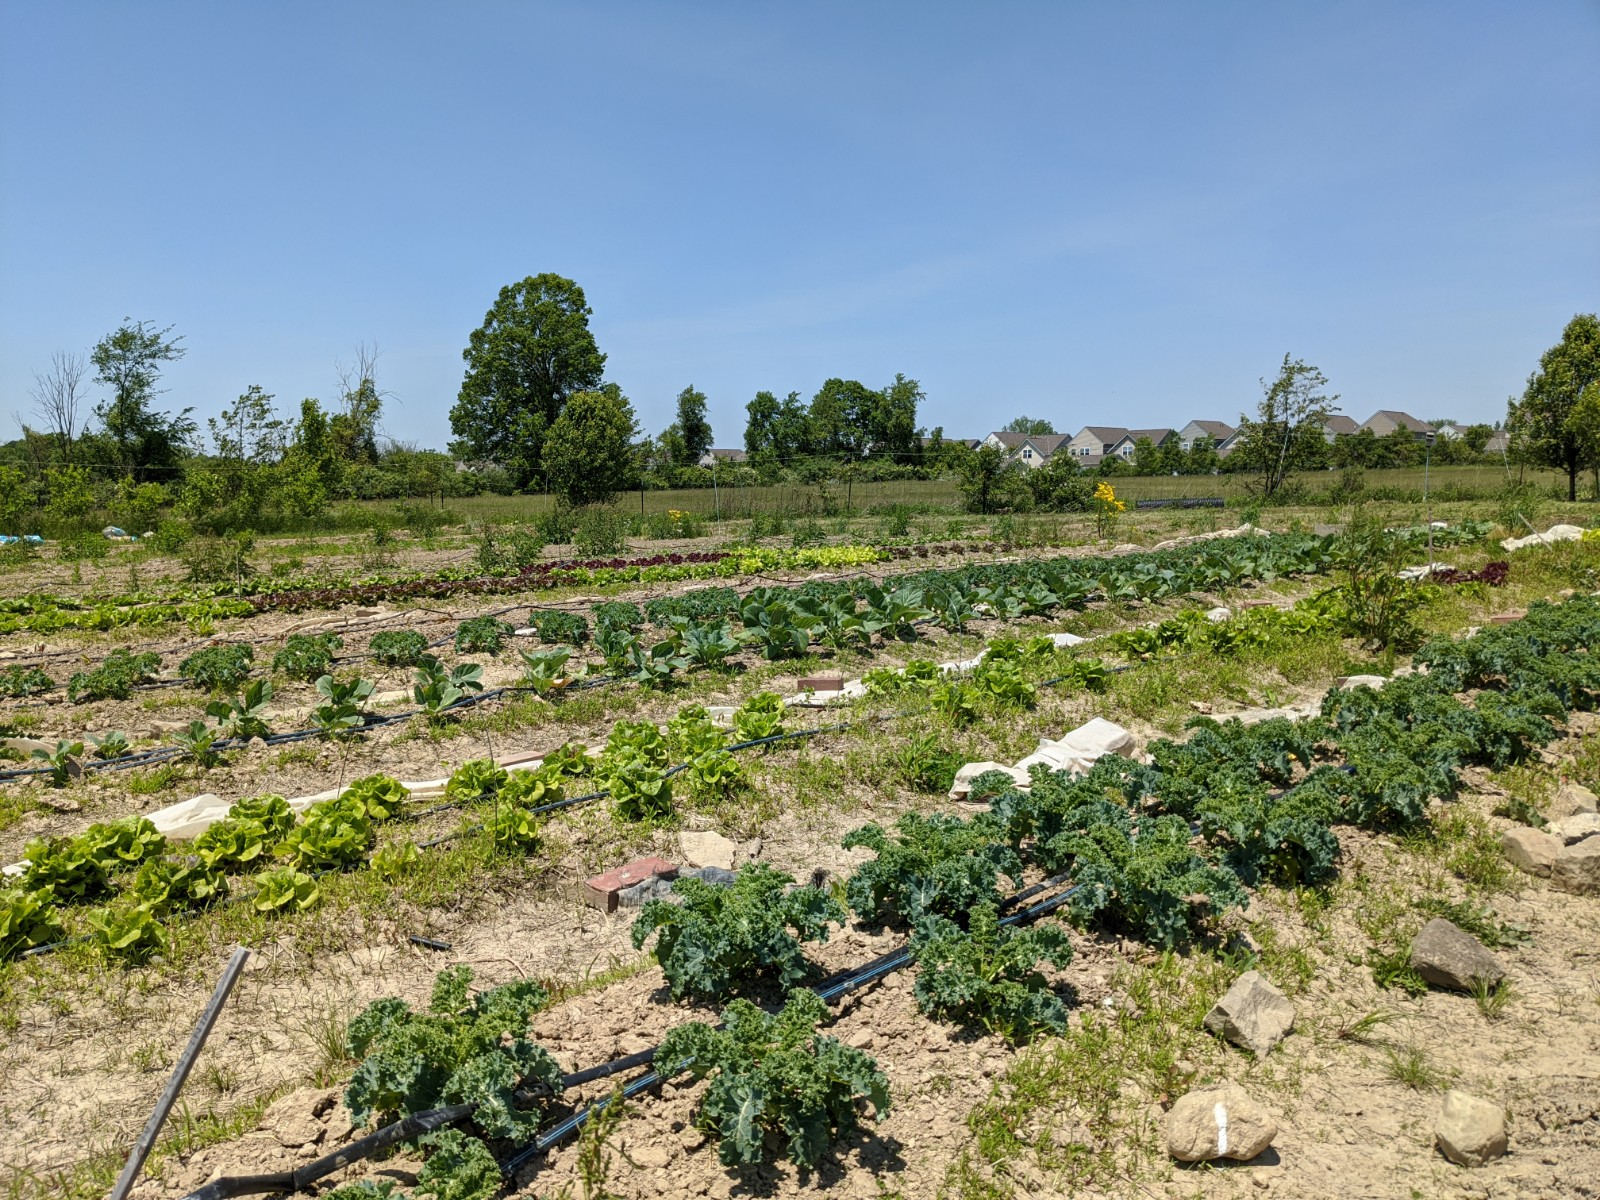 View of neatly manicured vegetable garden rows.